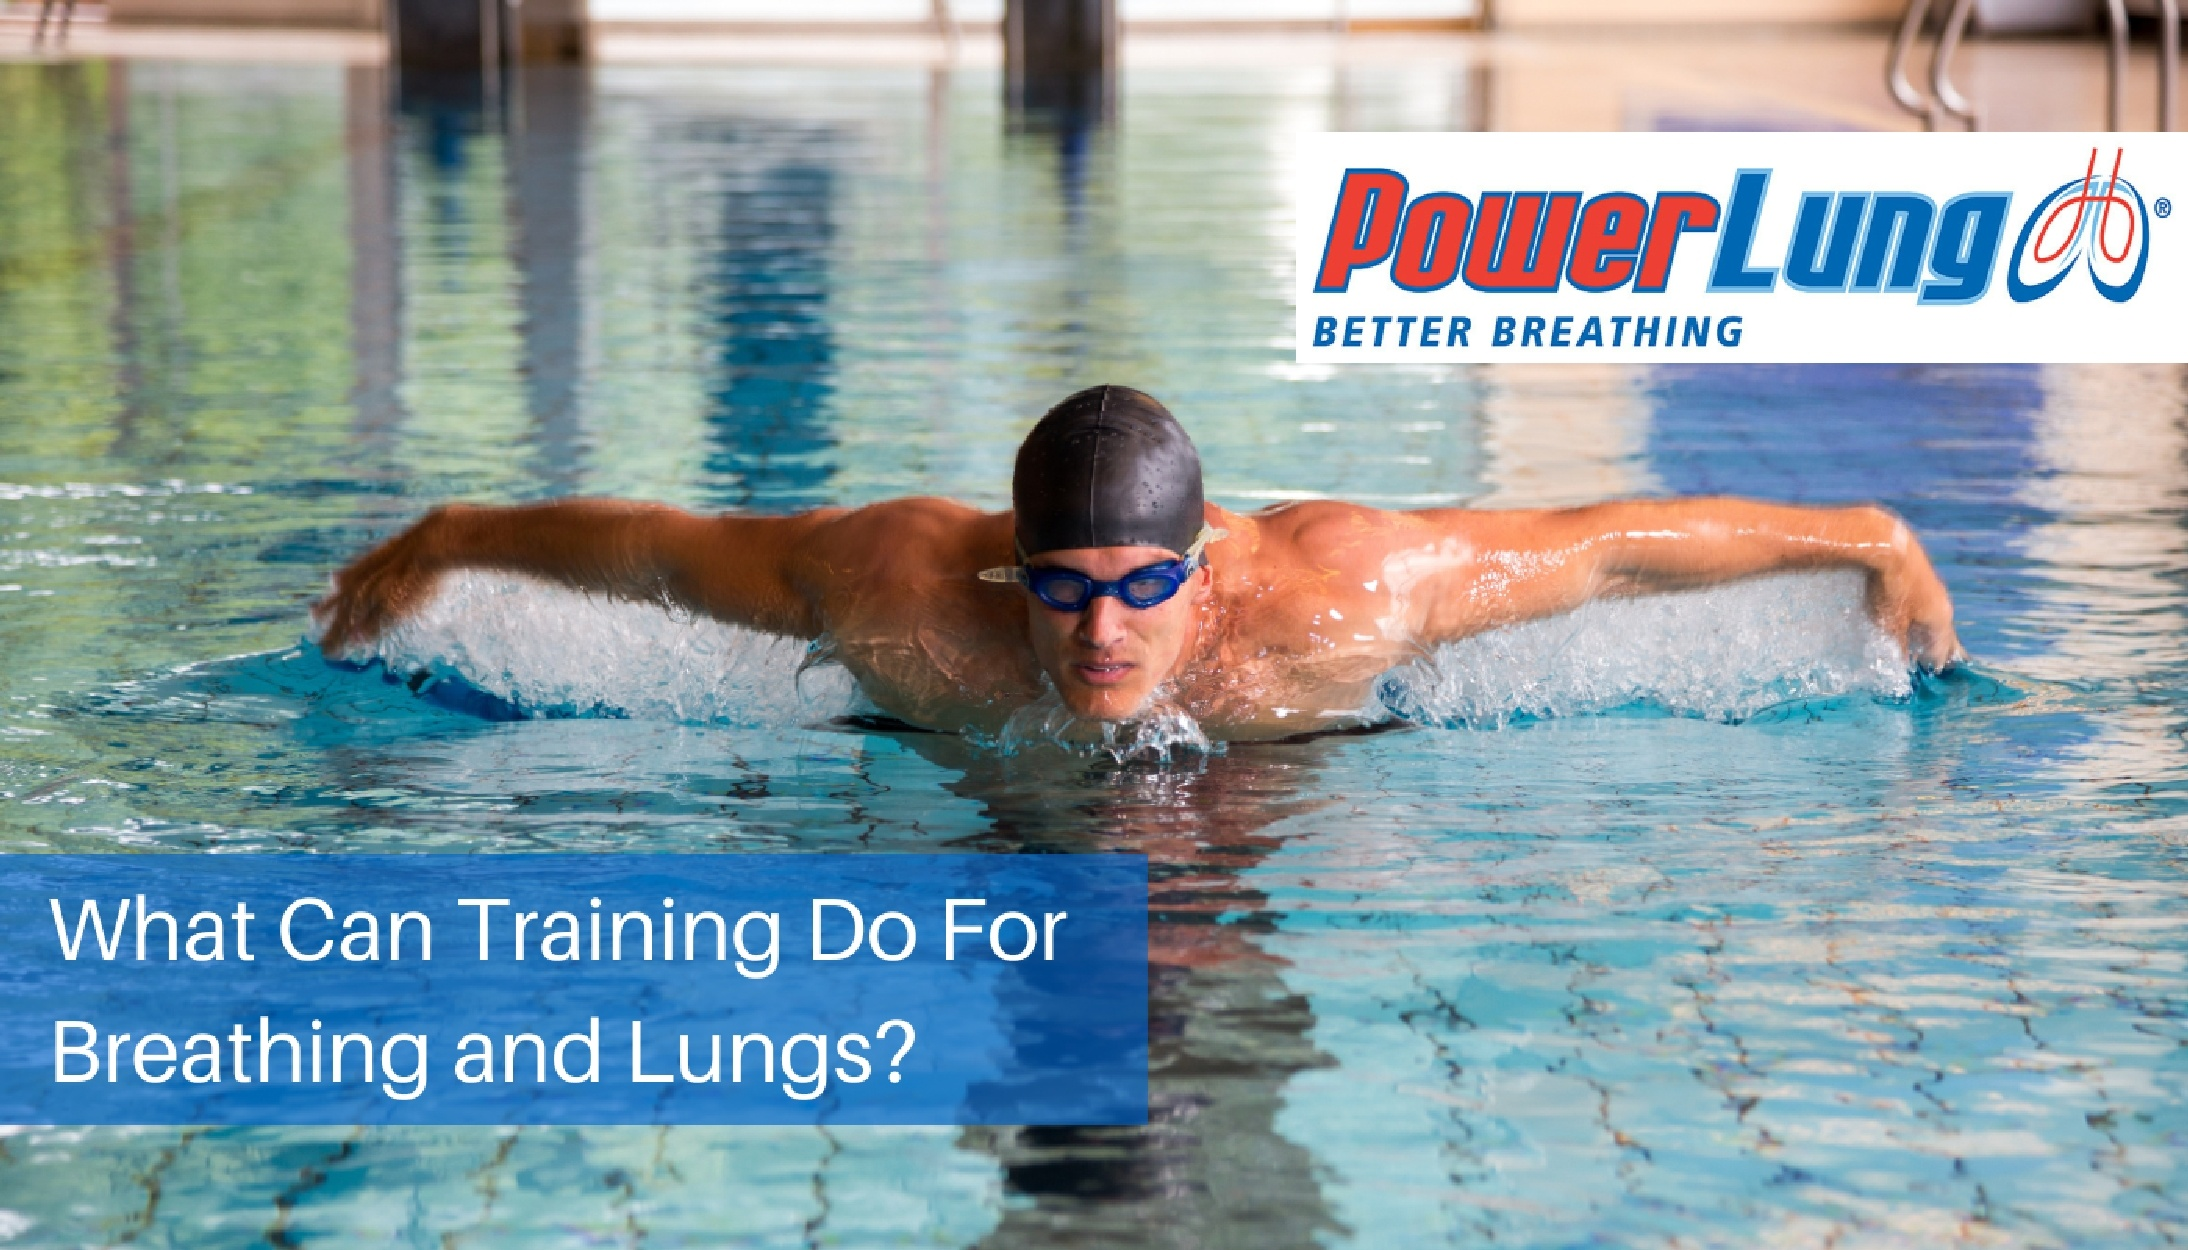 PowerLung - What Can Training Do For Breathing and Lungs-.jpg